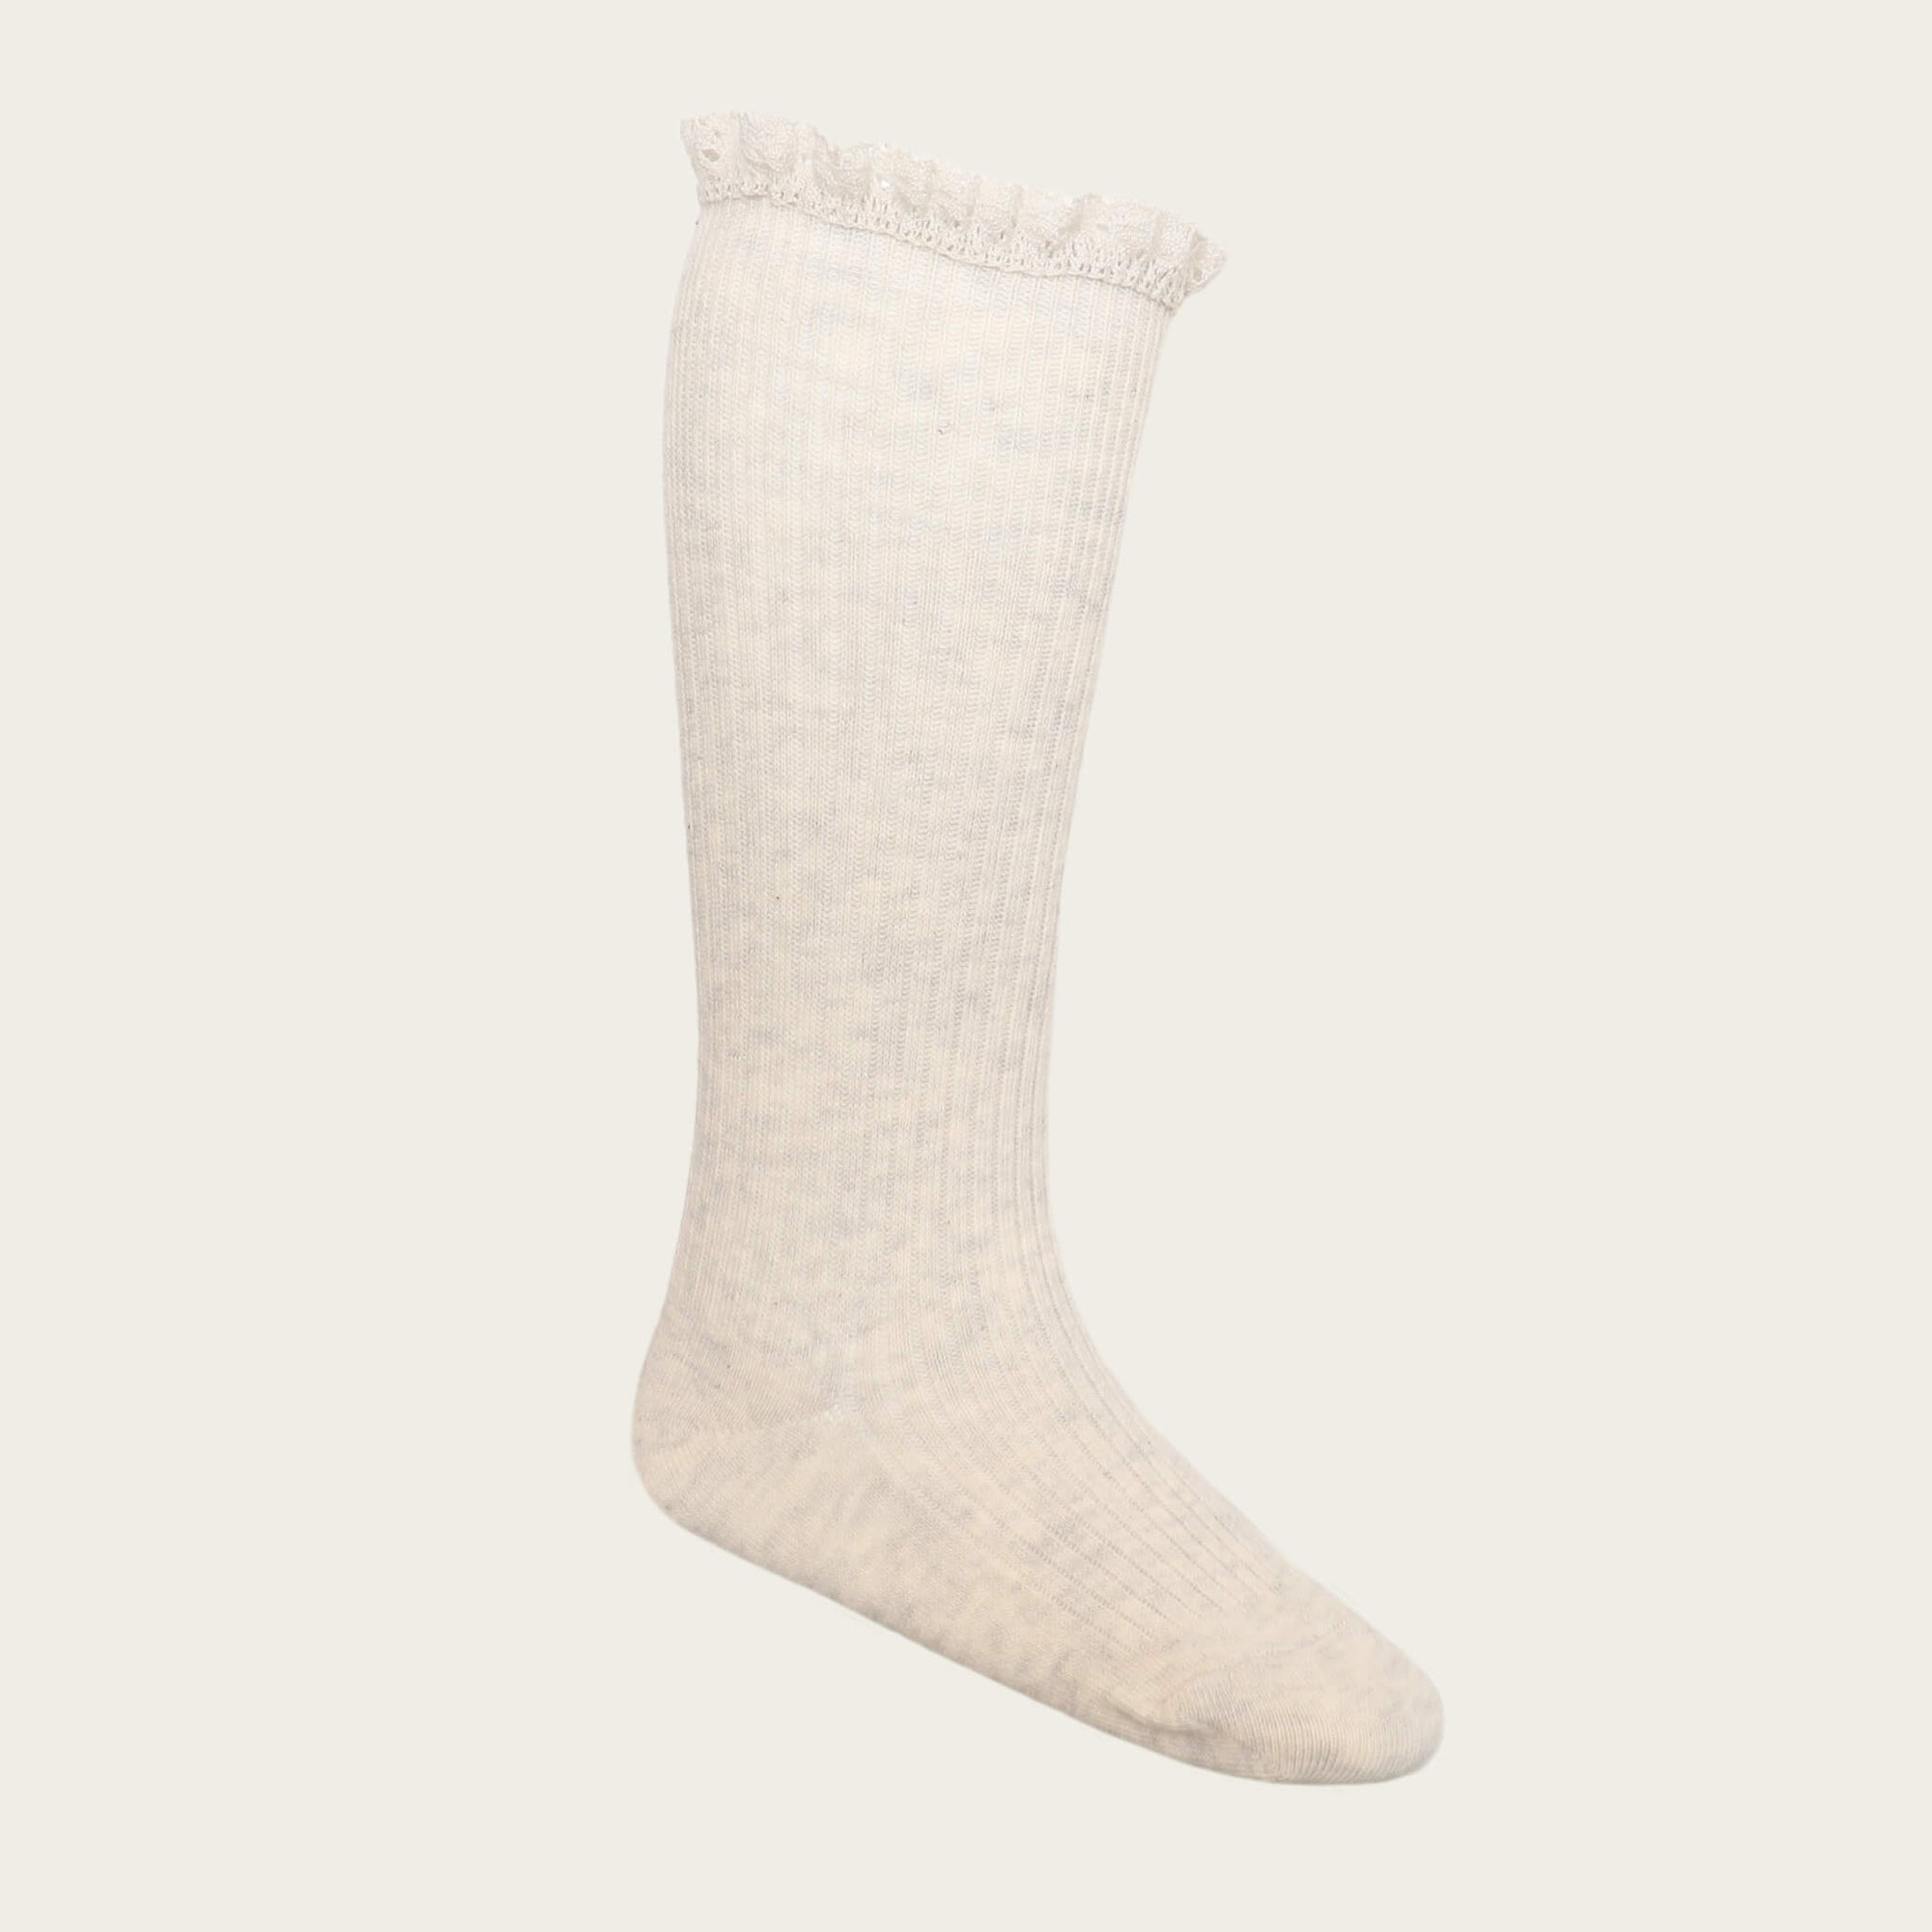 Jamie Kay Frill Sock Oatmeal | Tiny People